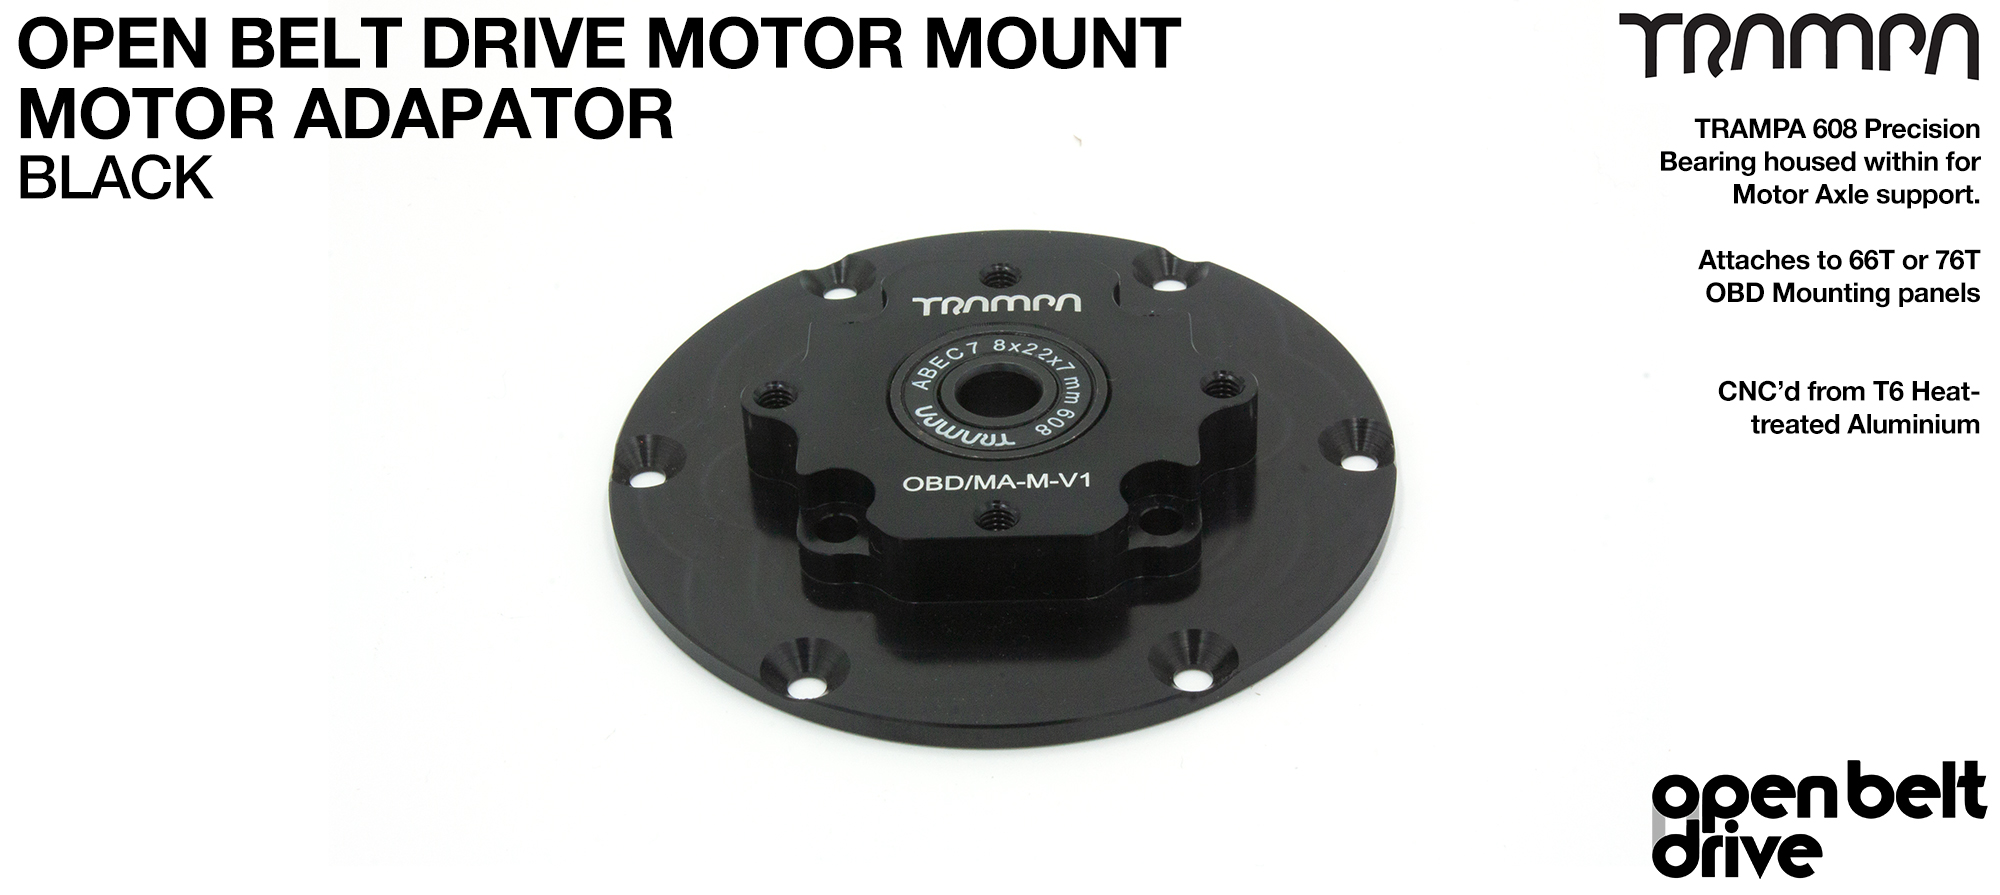 OBD Motor Adaptor with Housed Bearing